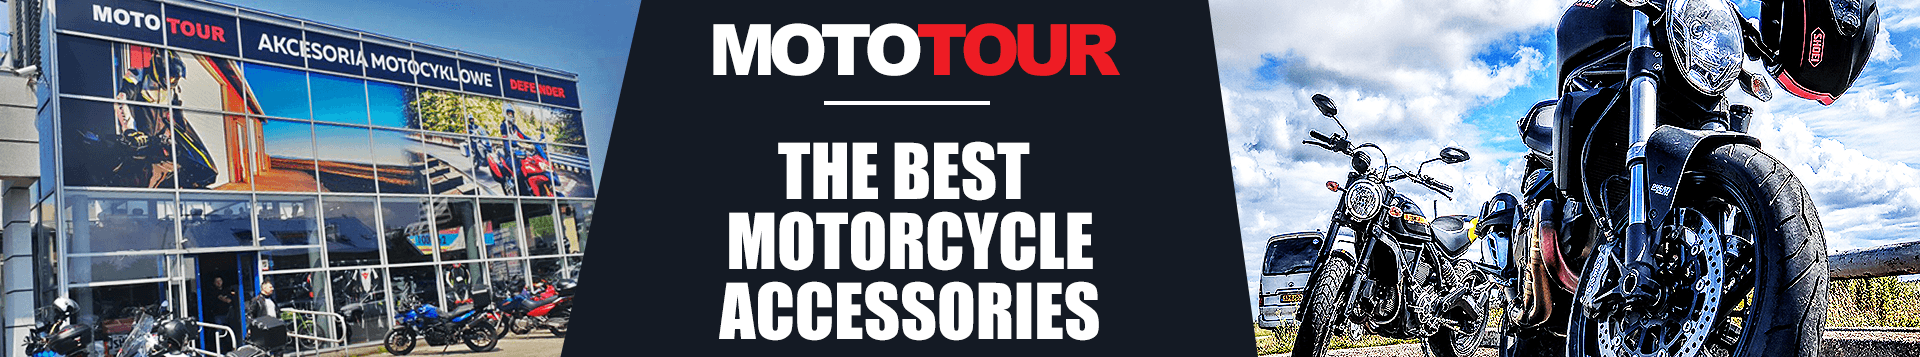 motorcycle accesories